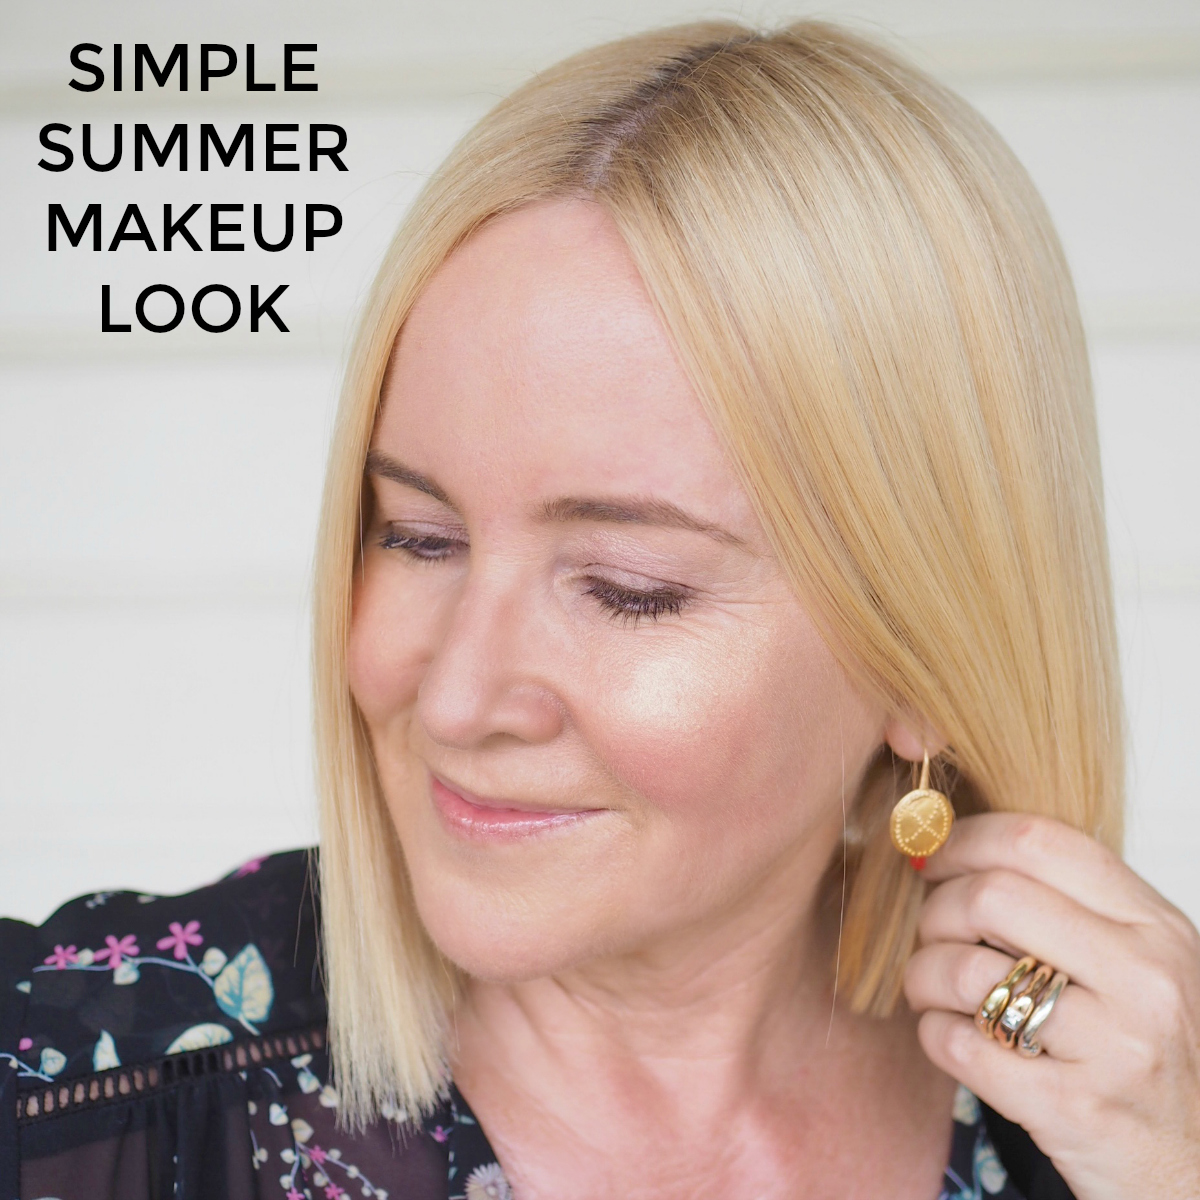 How to create a simple summer makeup look